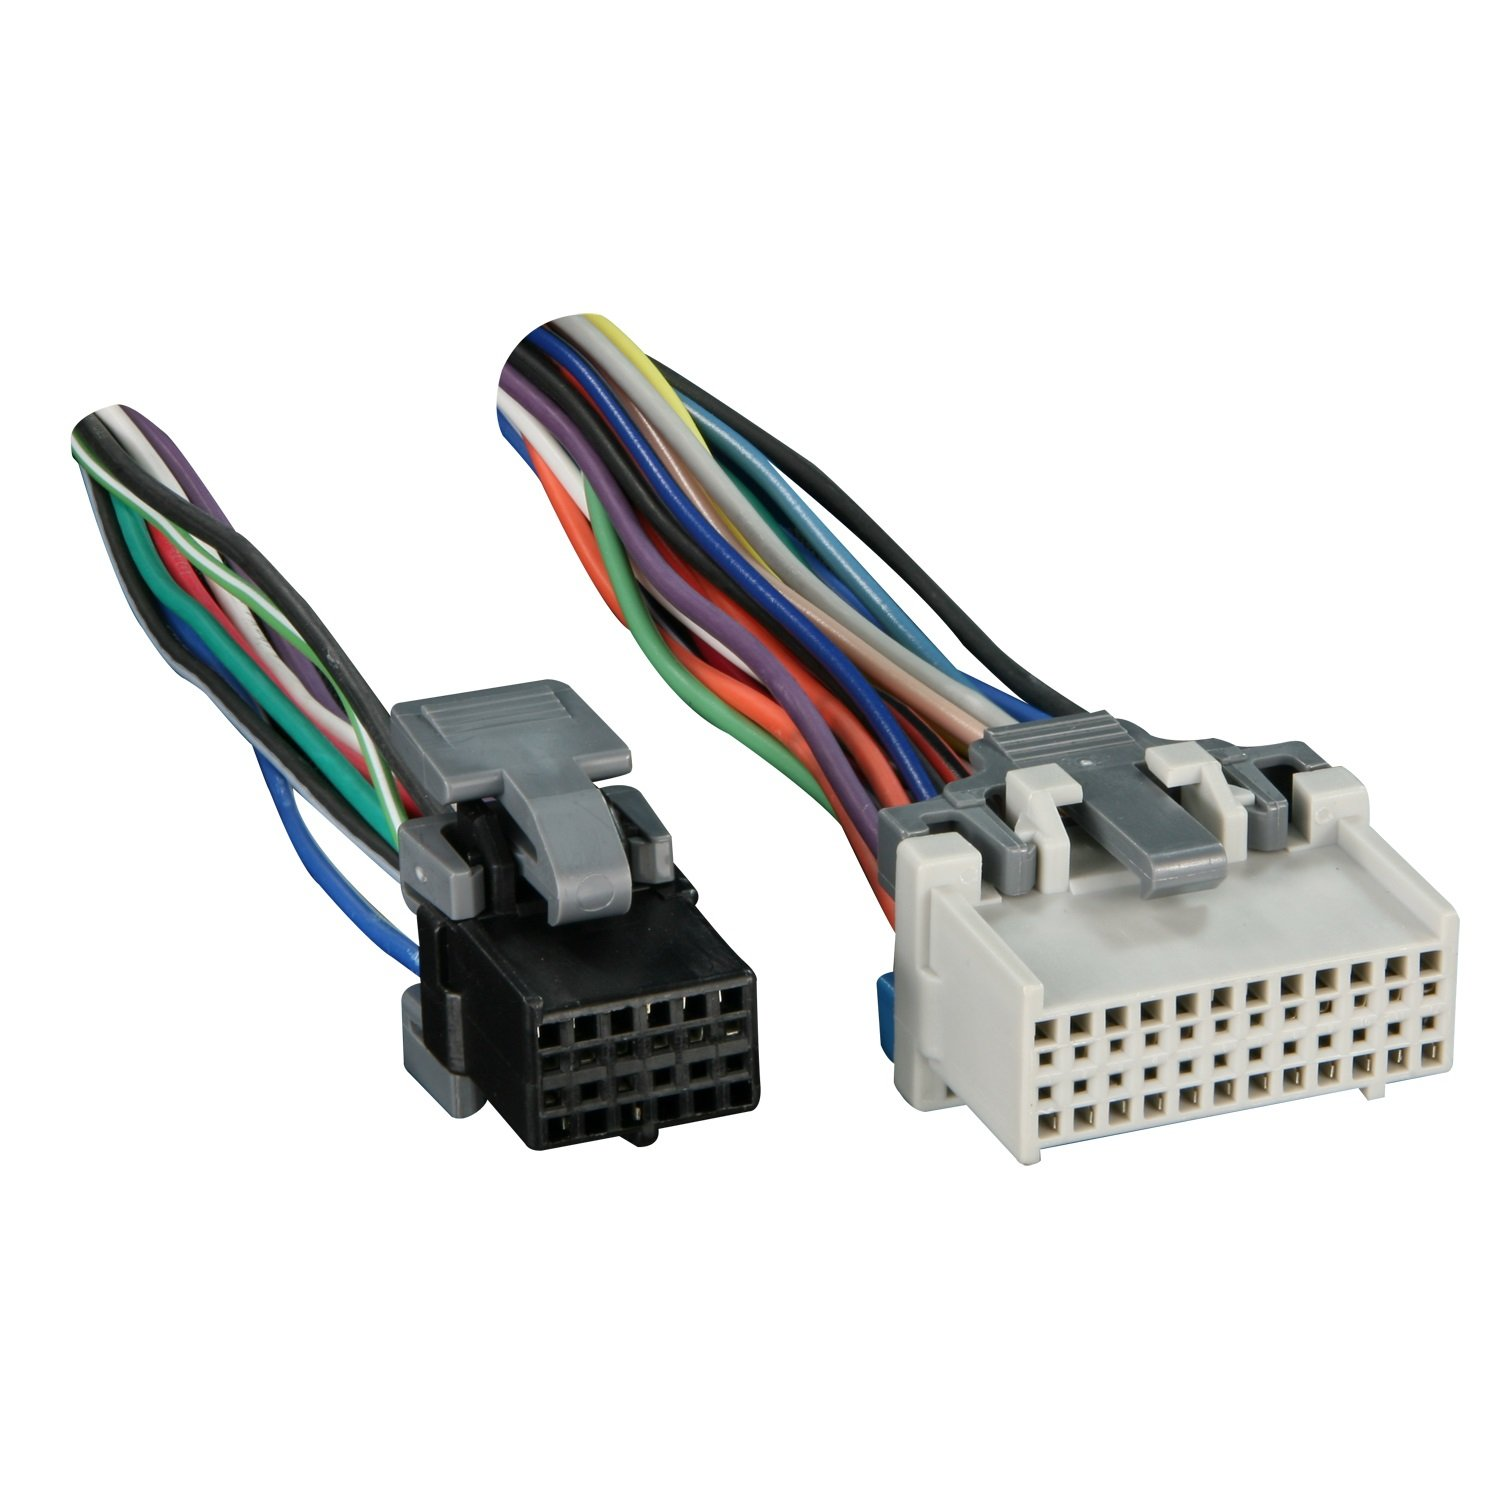 711log4bdML._SL1500_ amazon com metra turbowires 71 2003 1 wiring harness car electronics OEM Wiring Harness Connectors at eliteediting.co